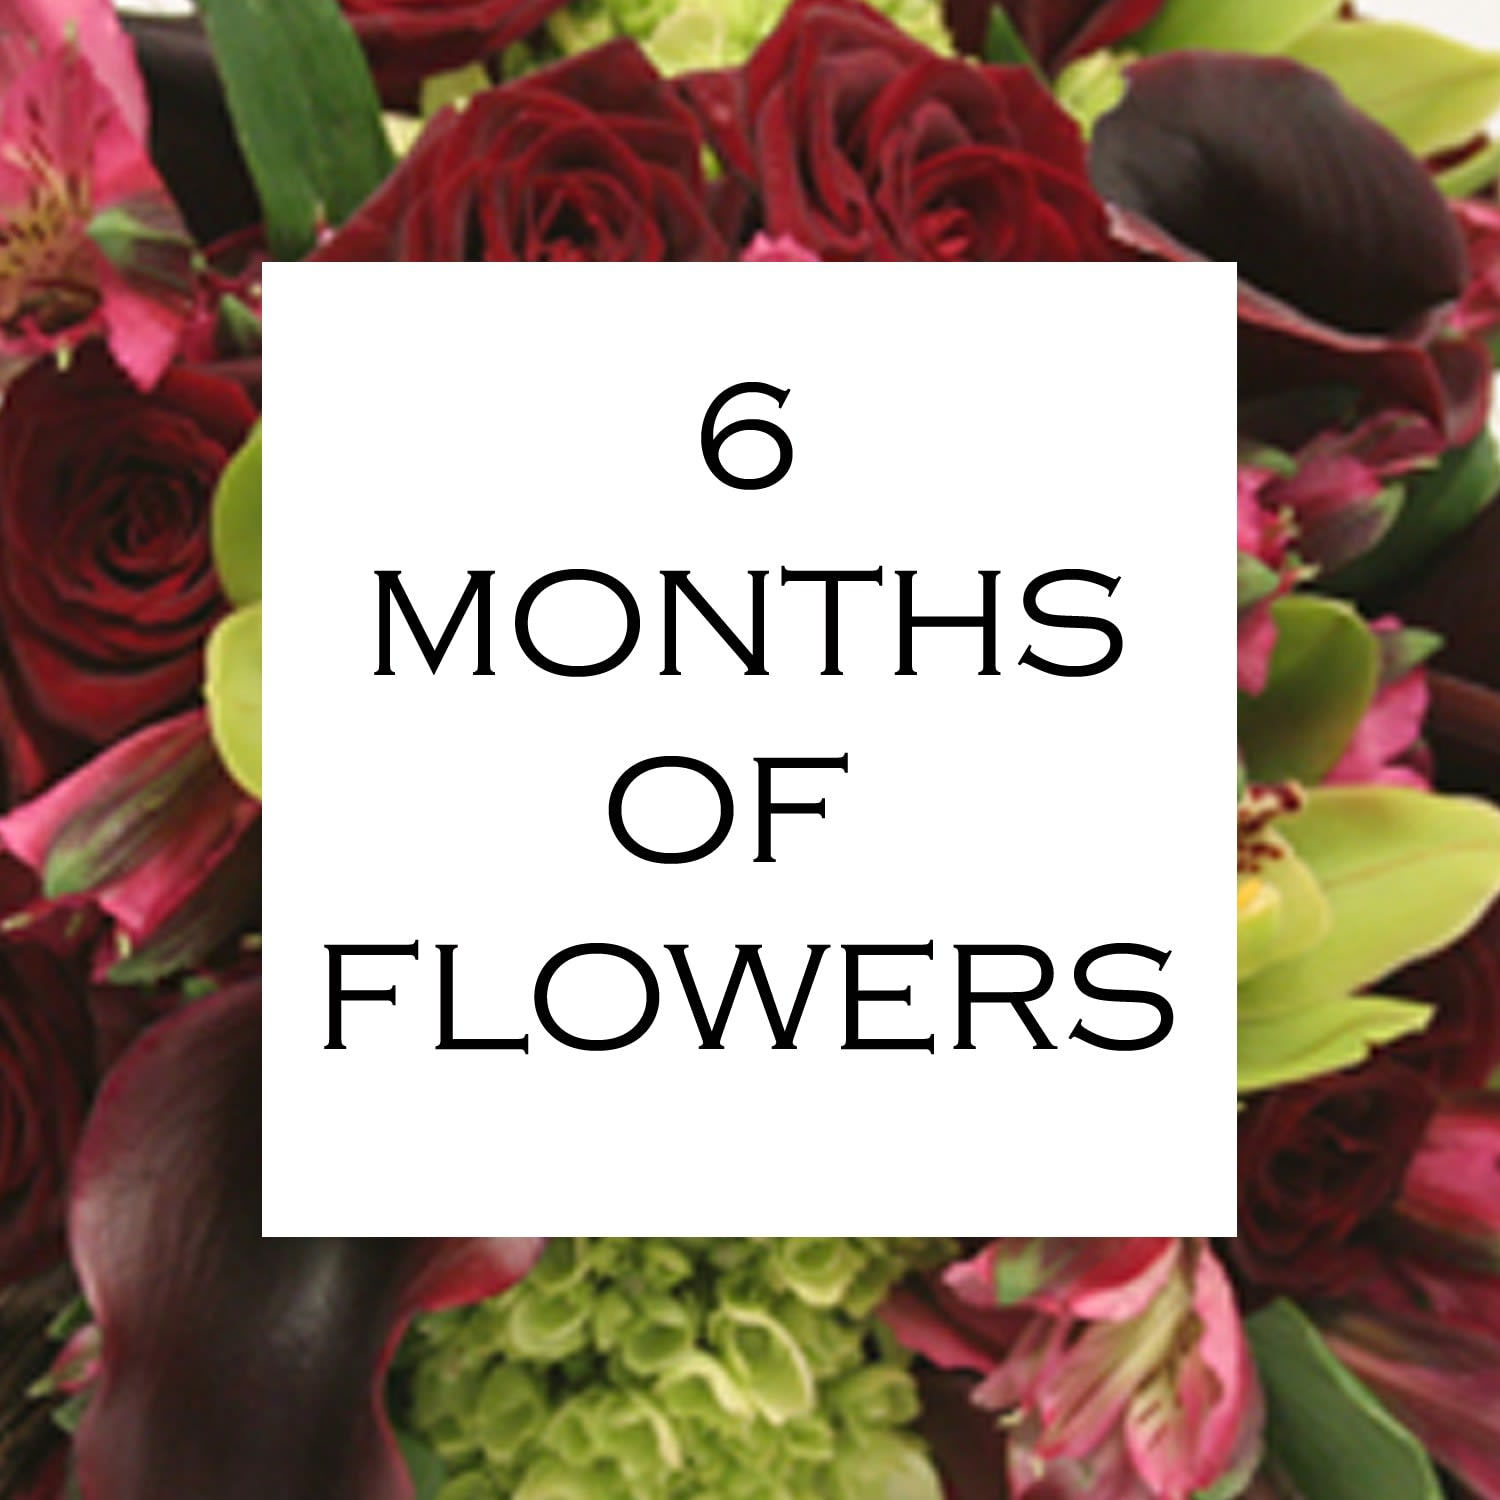 6 Months of Flowers - Daily floral delivery from Botanica Floral Design